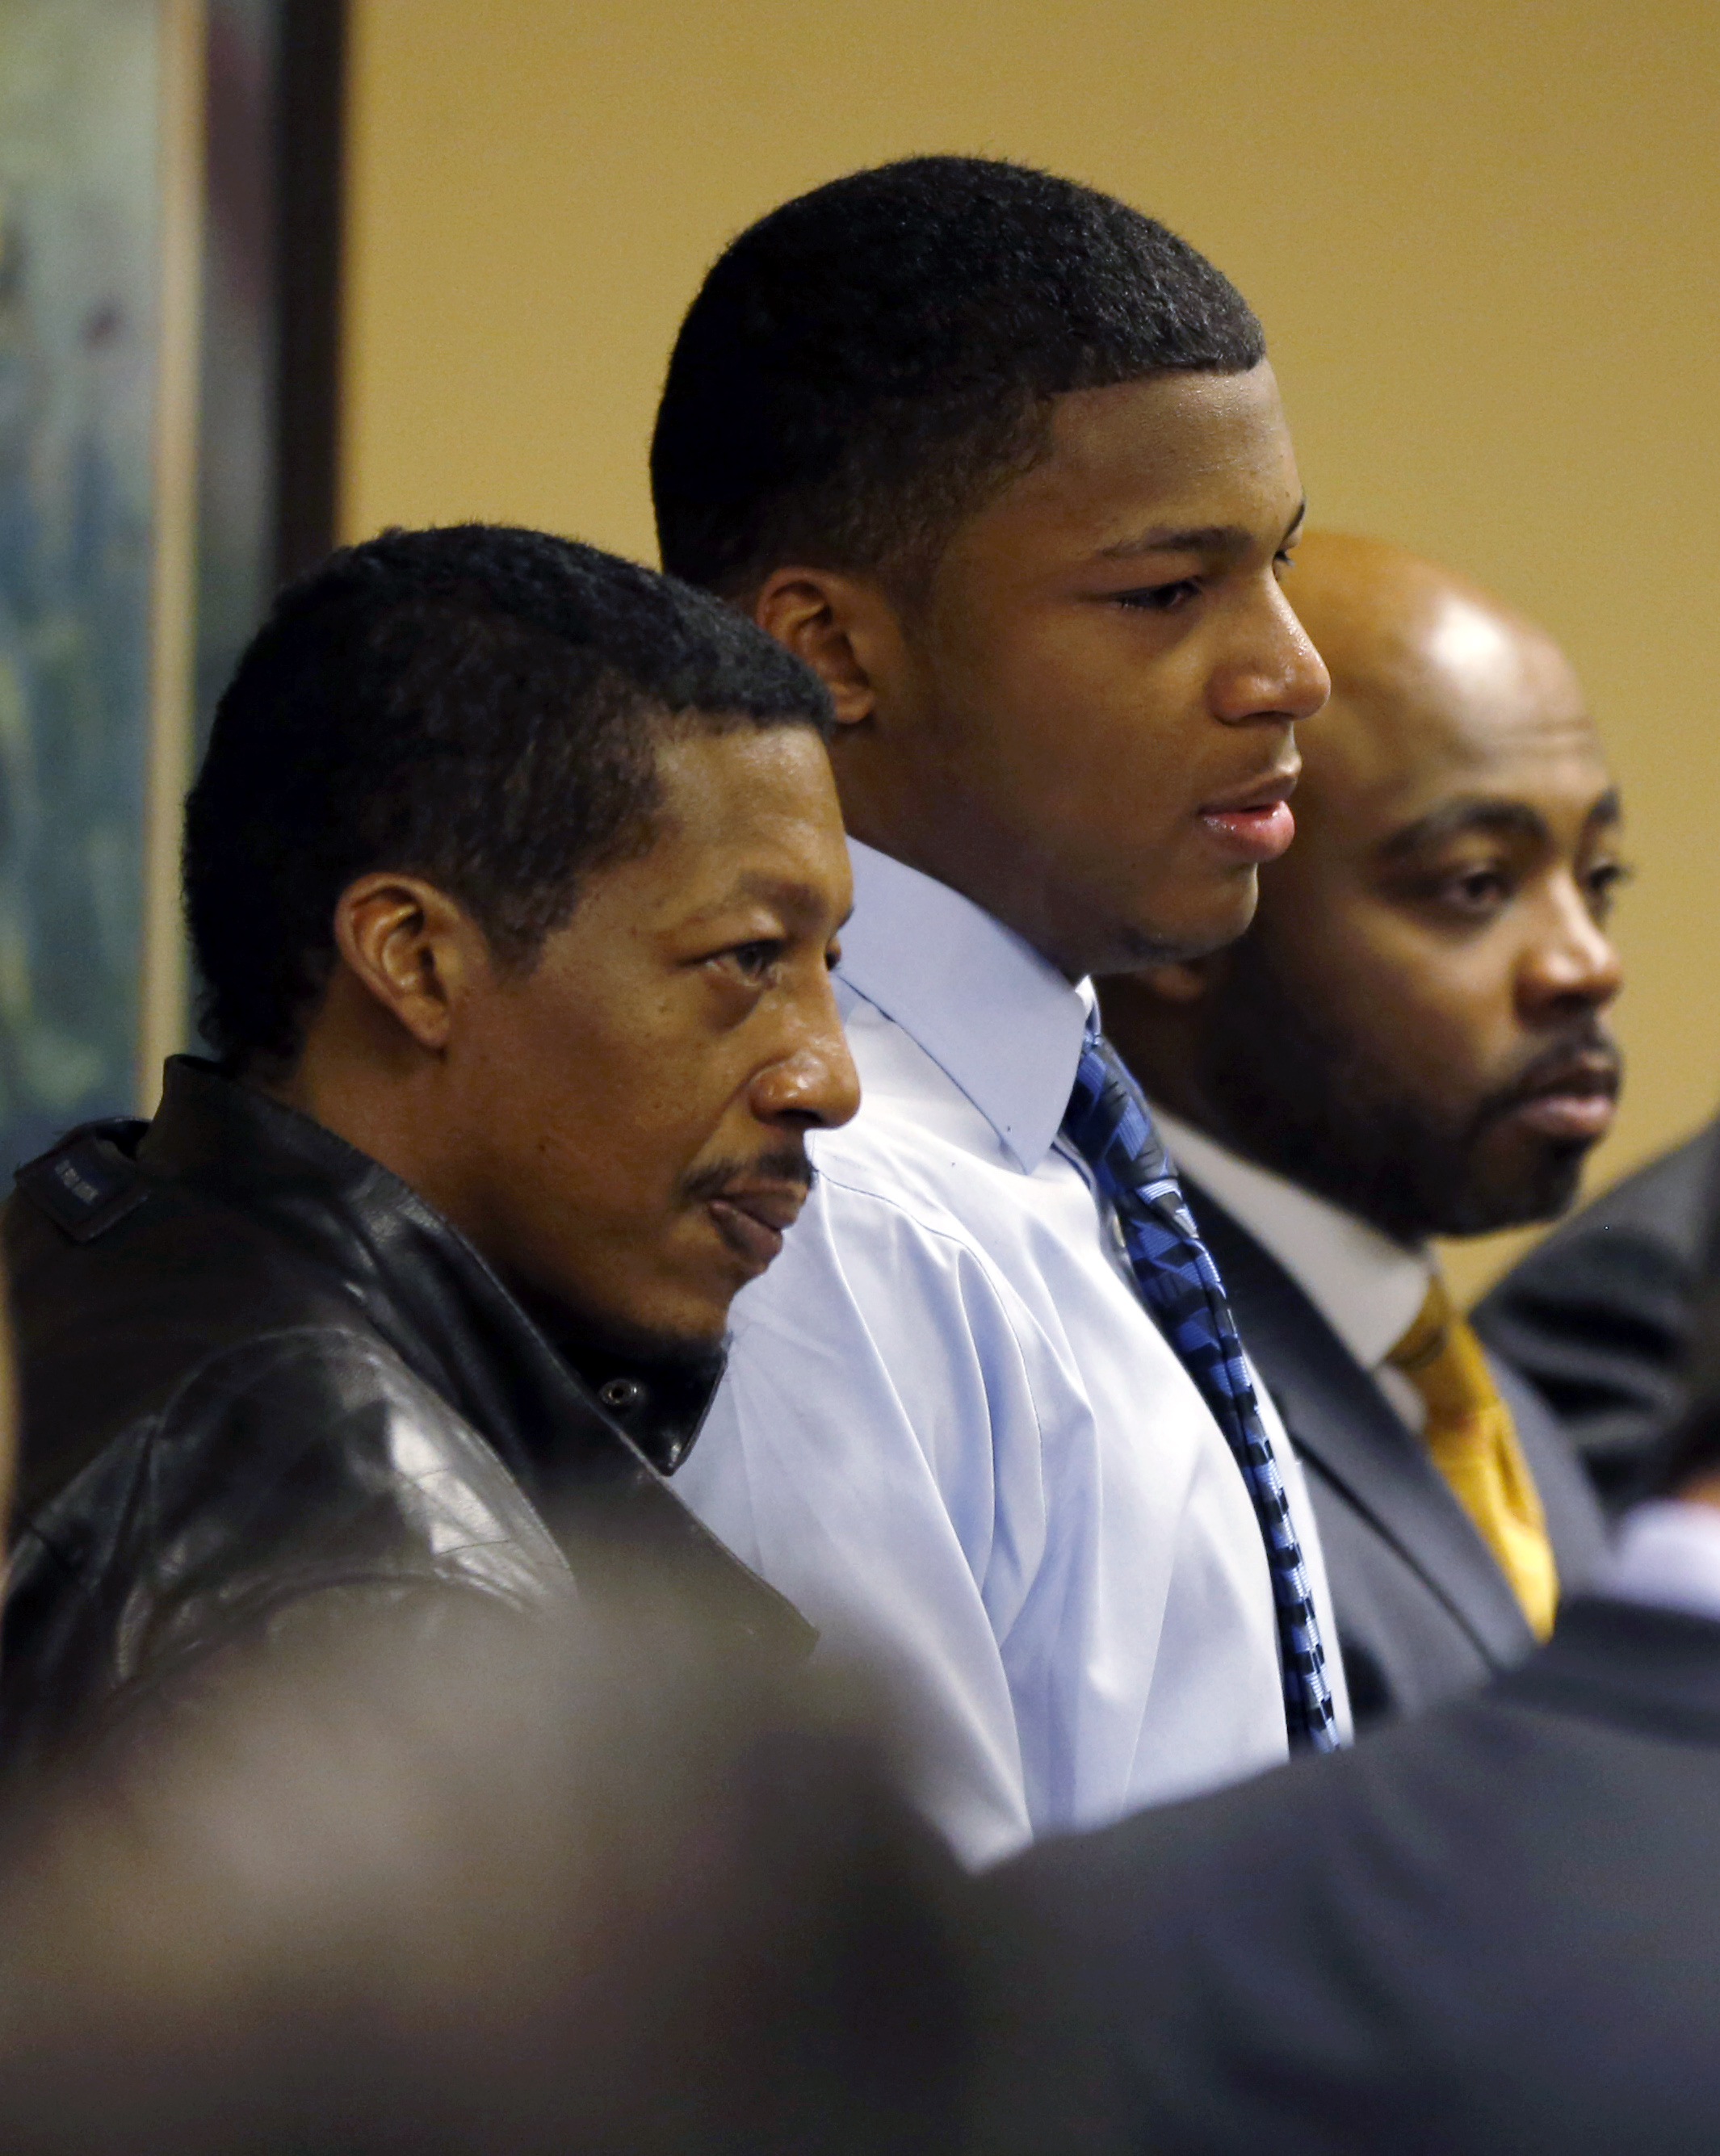 Steubenville rape case: One of convicted teens released